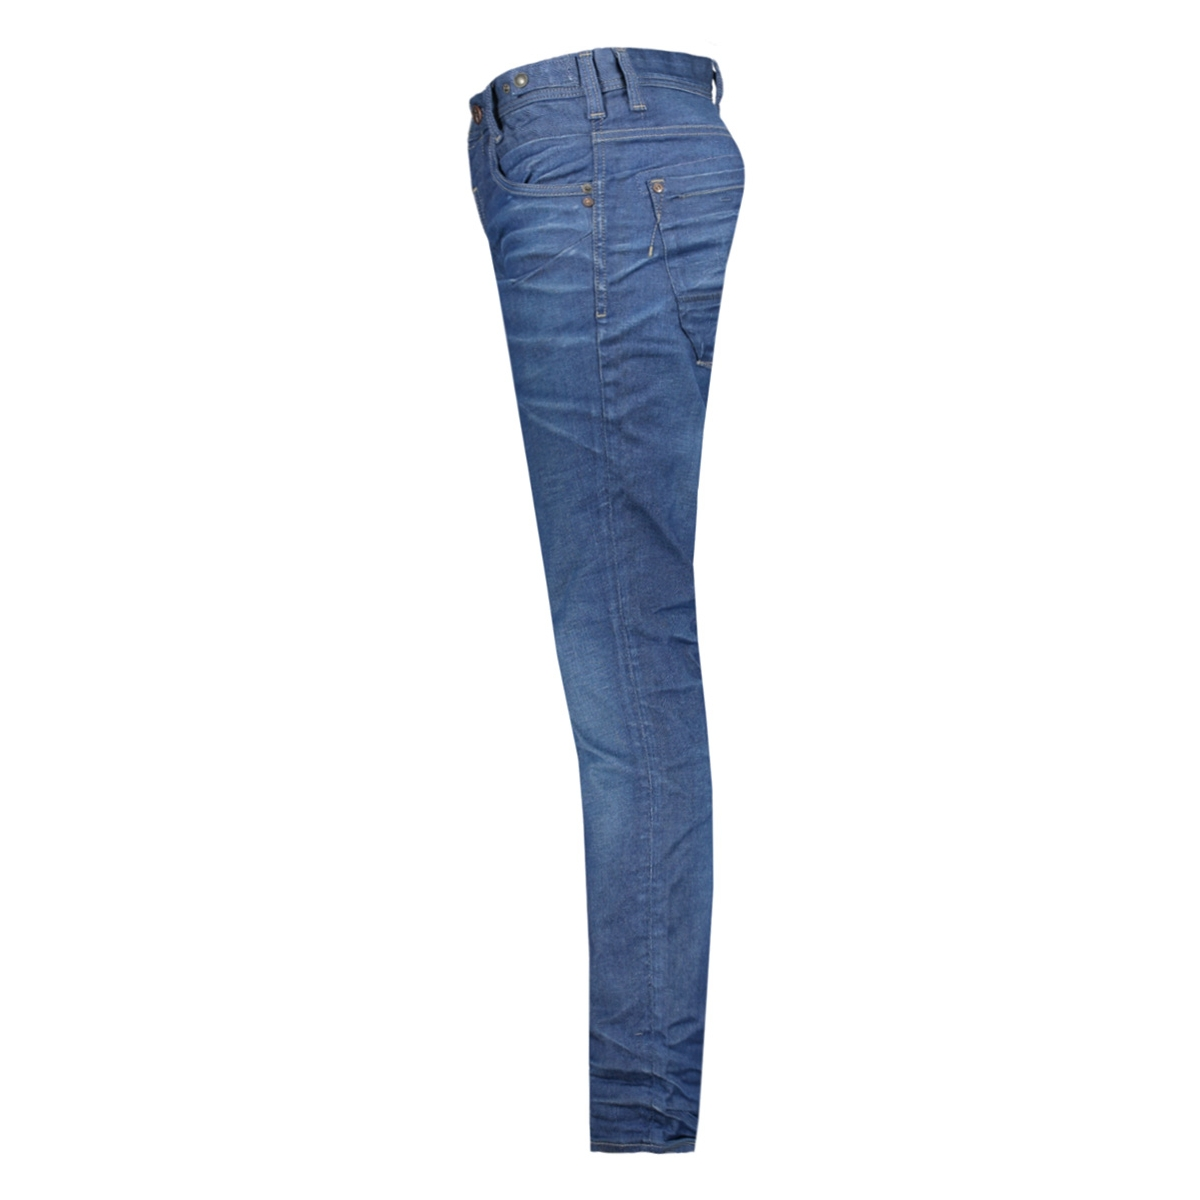 skyhawk stretch denim ptr170 pme legend jeans sbb